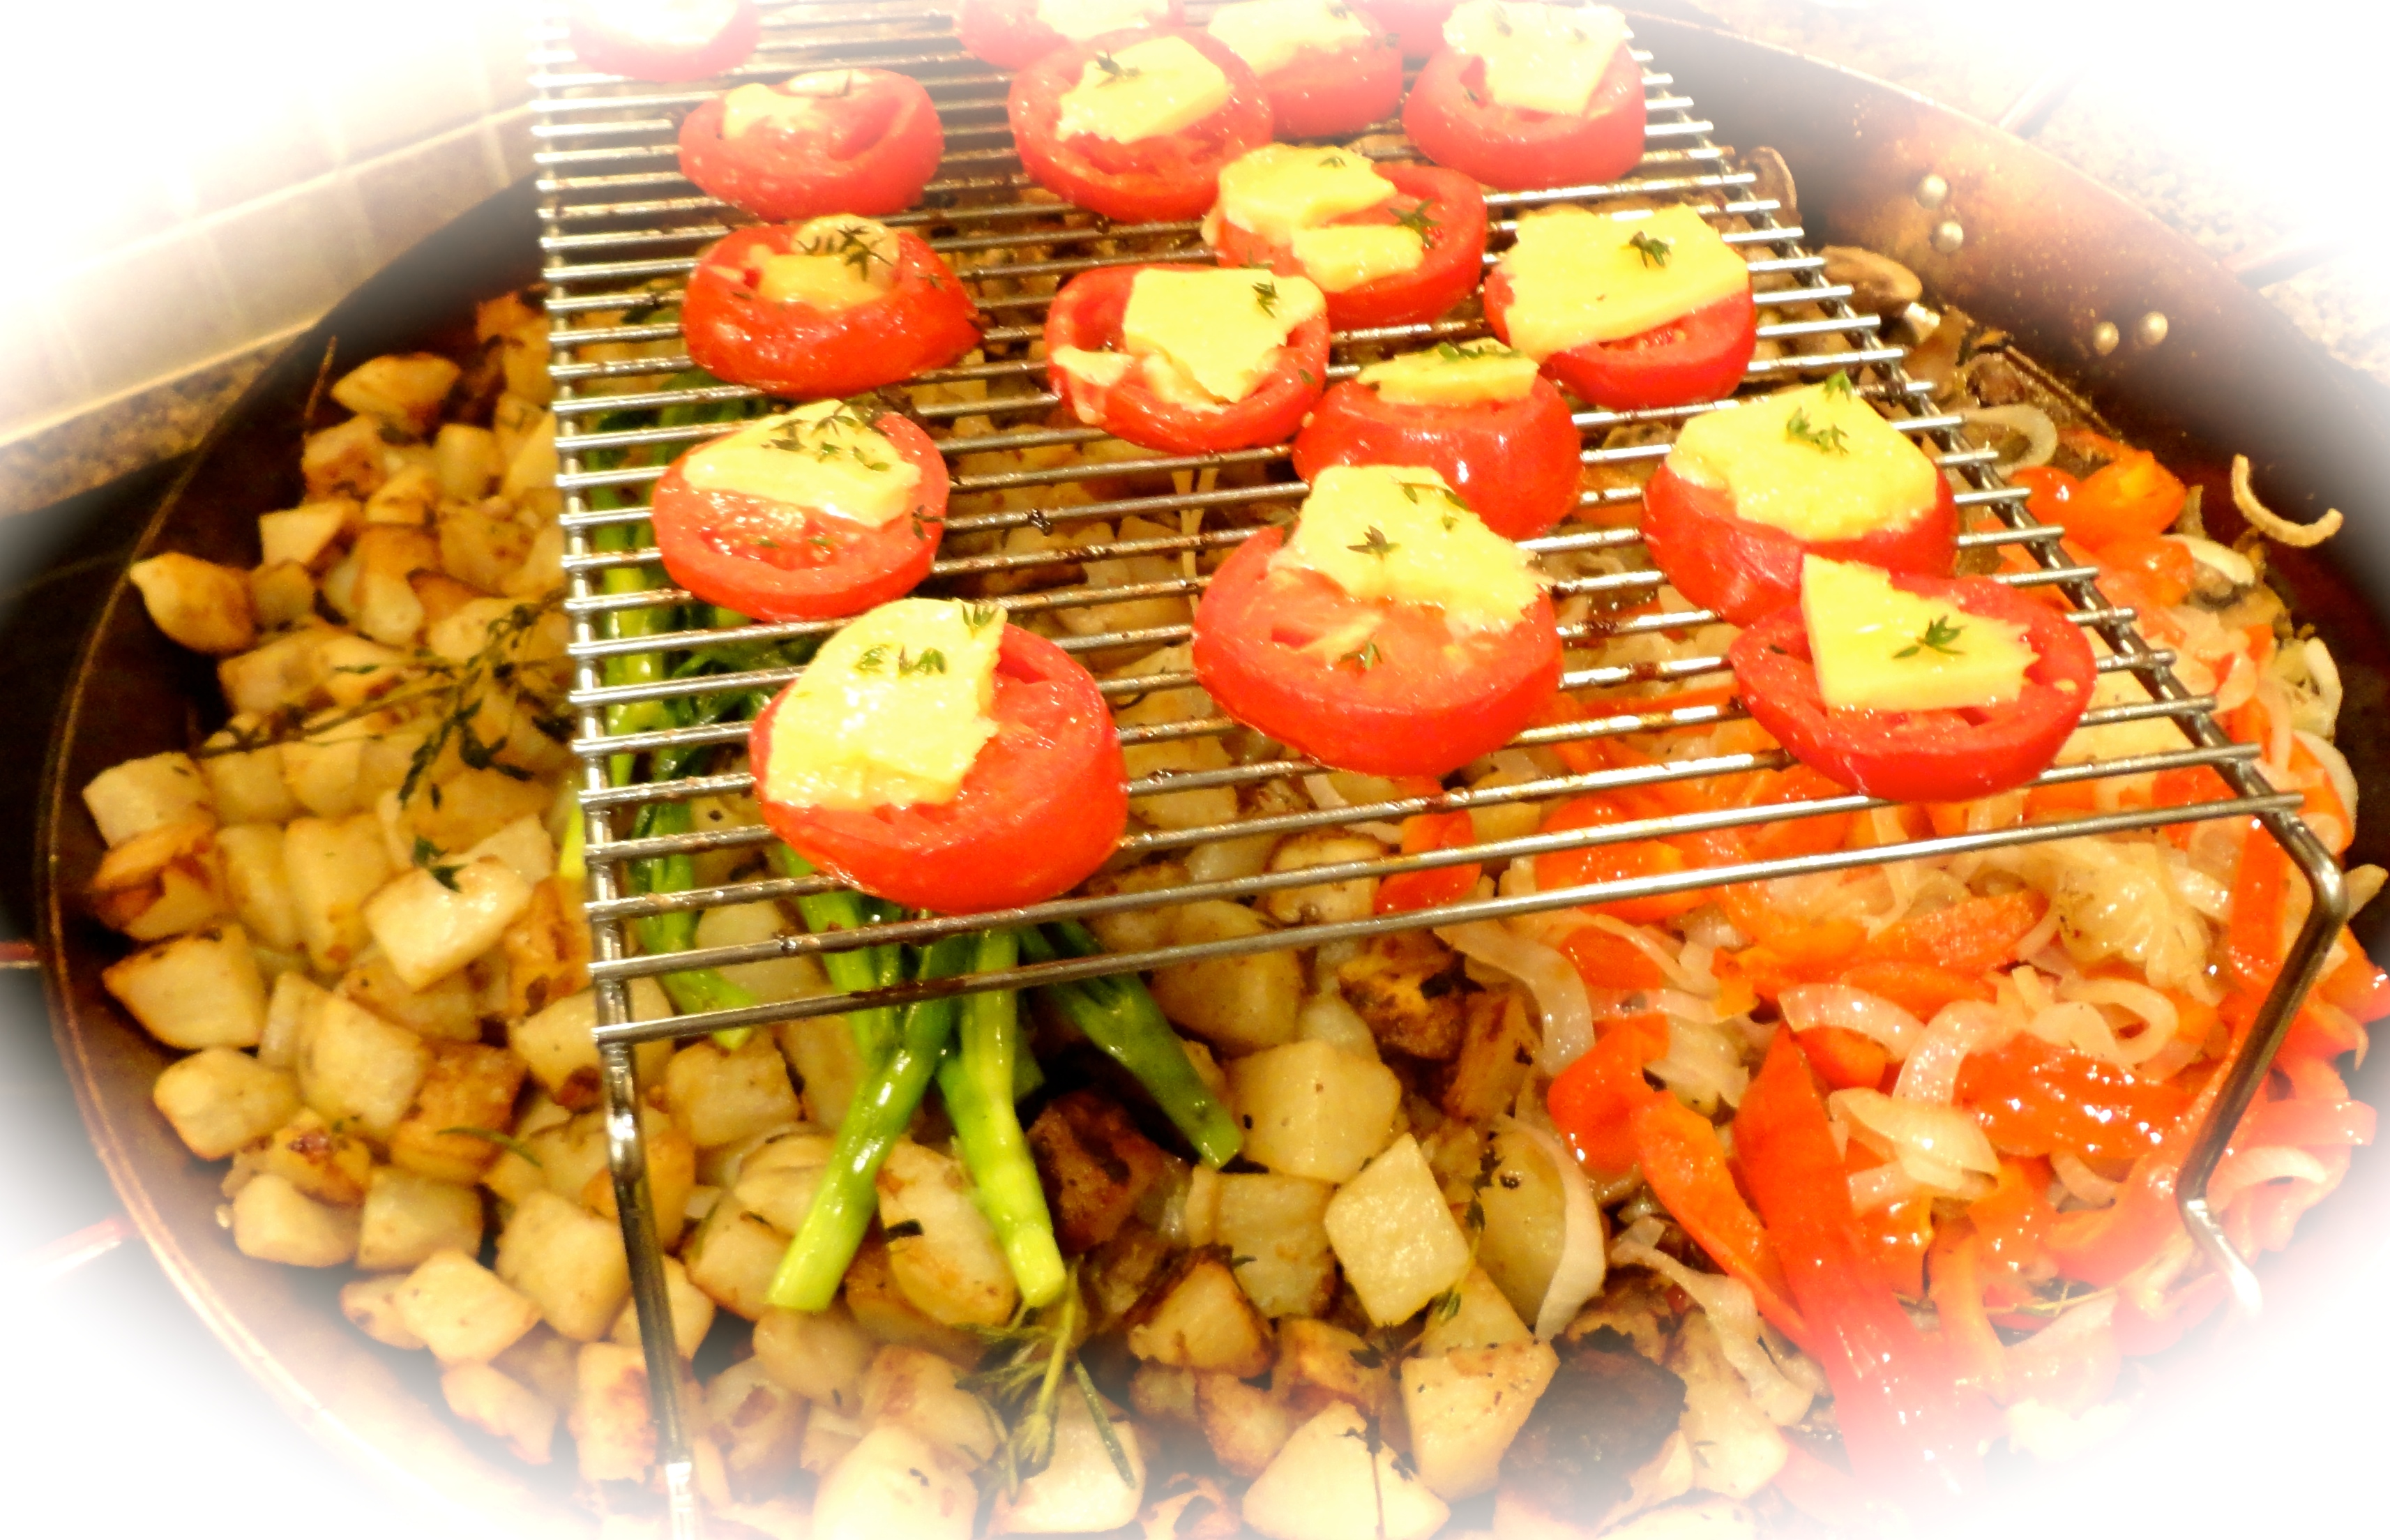 grilled vegetables of the season